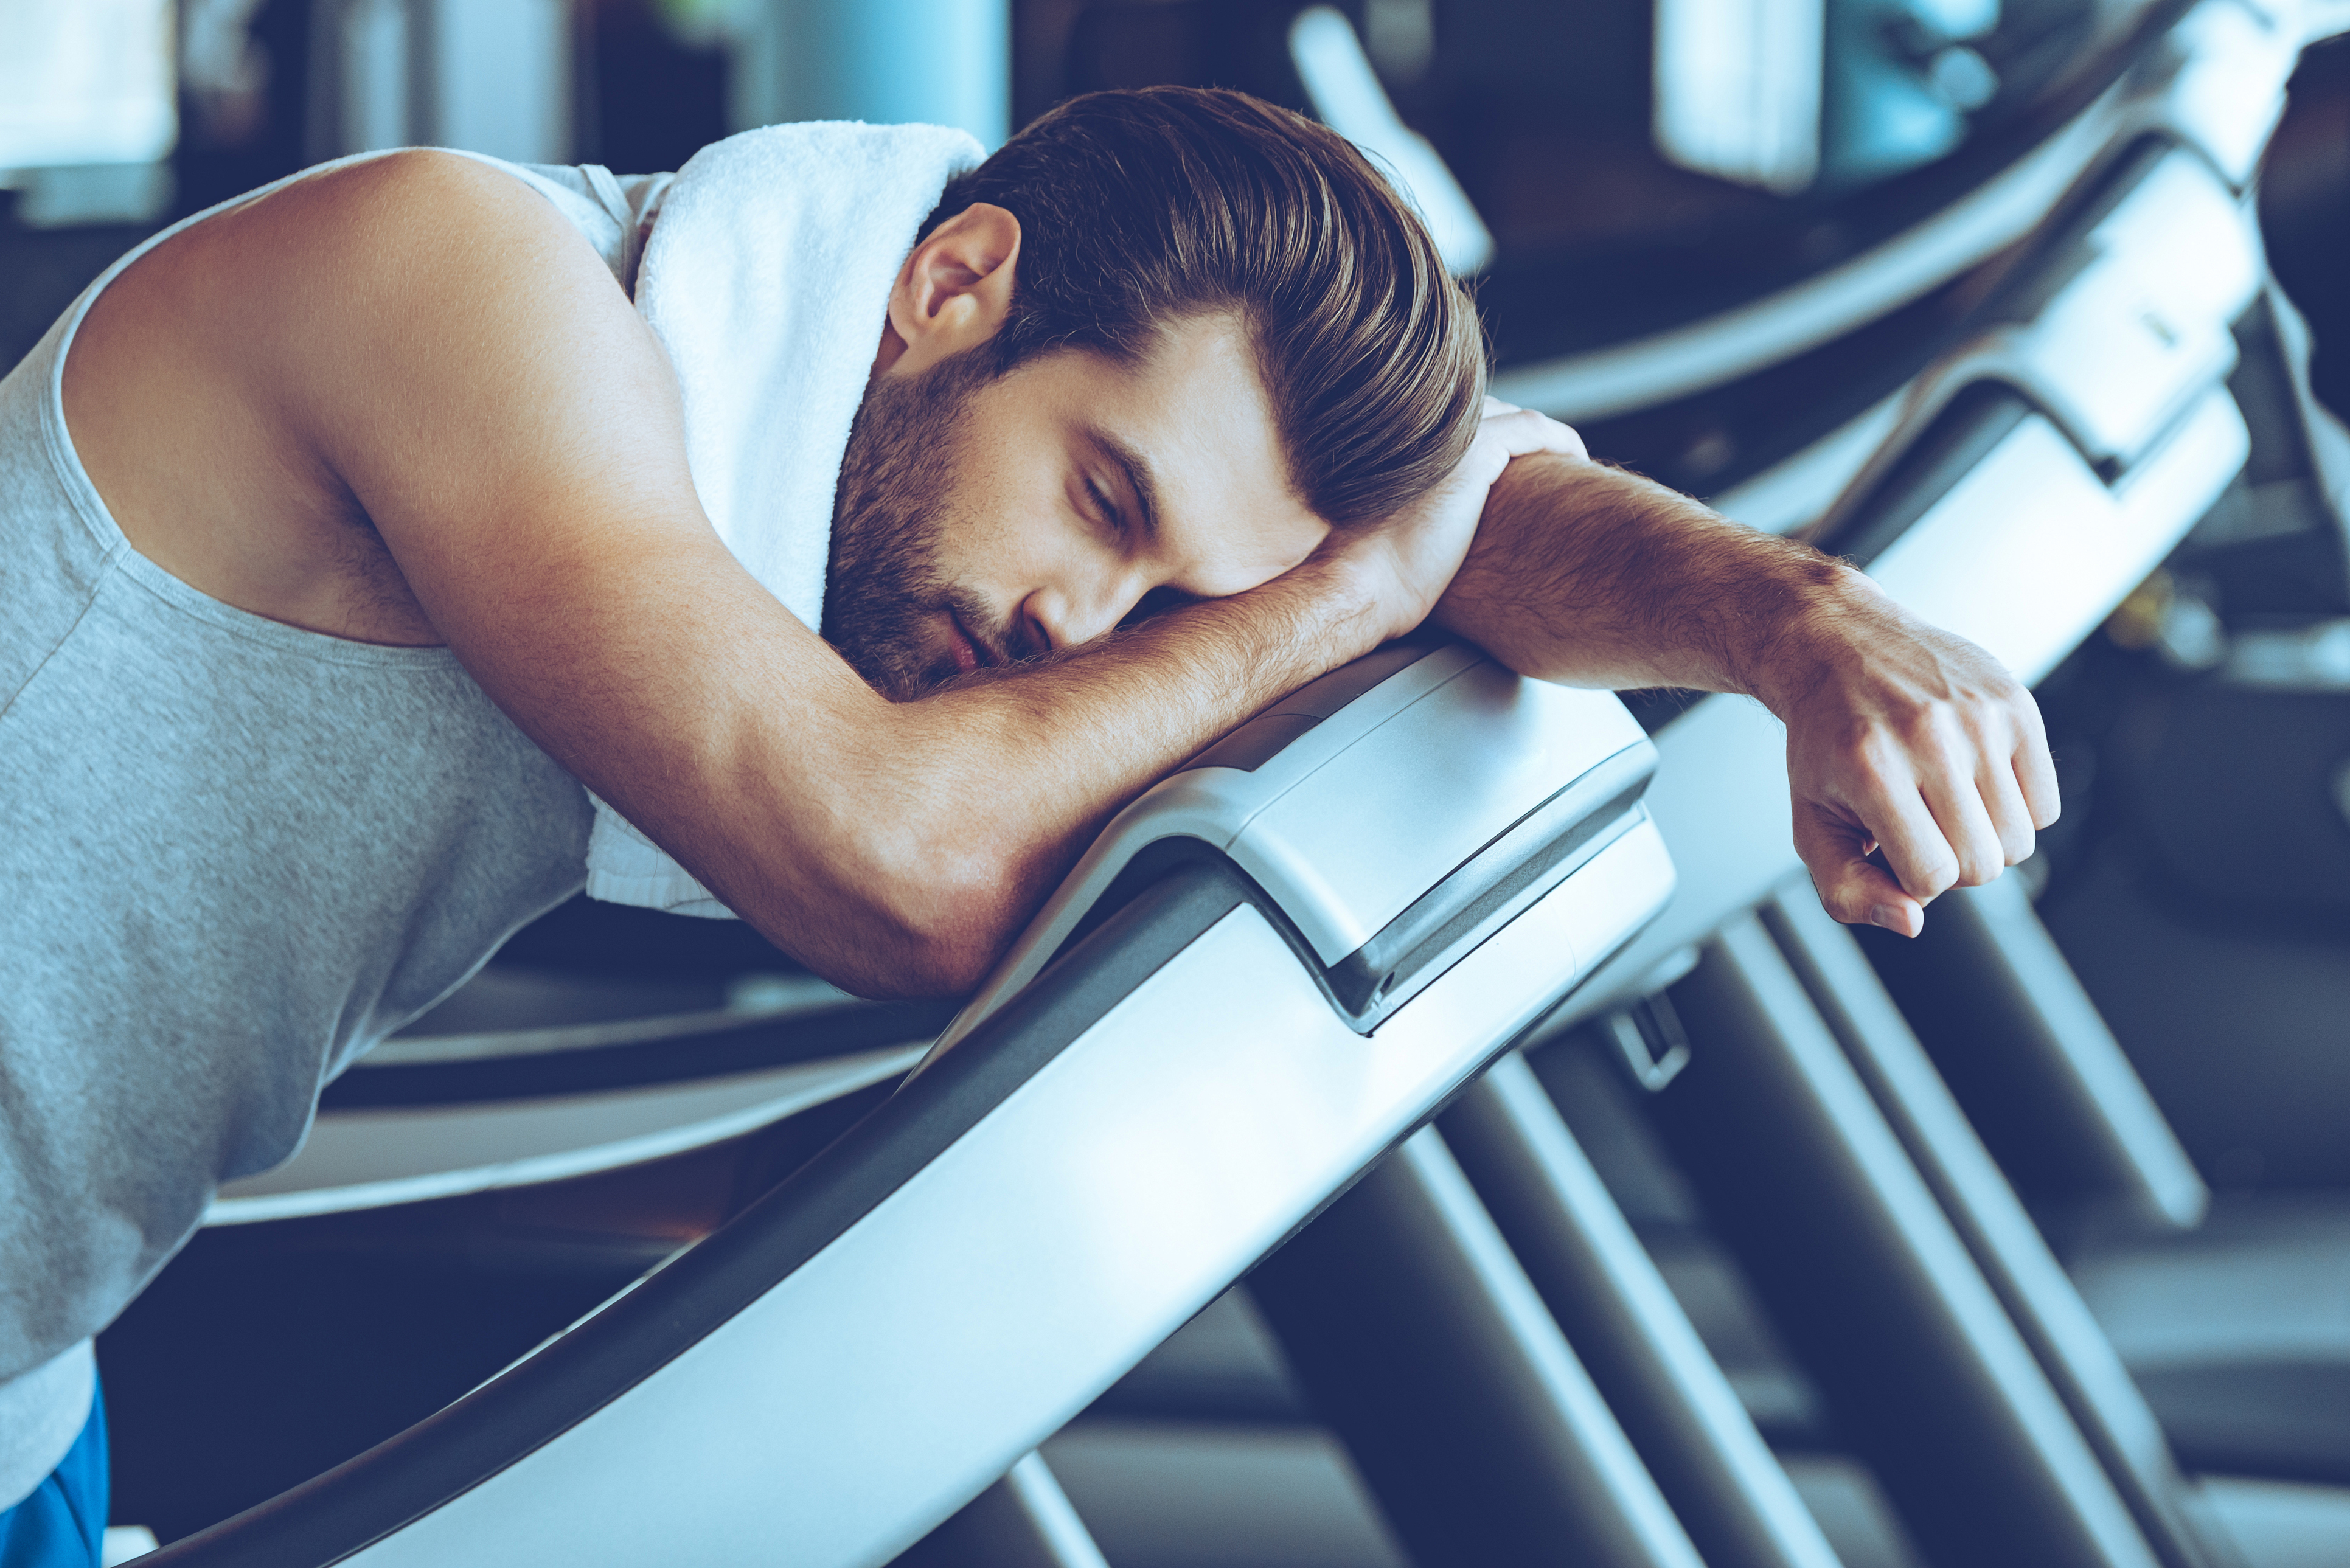 Side view of young man in sportswear looking exhausted while leaning on treadmill at gym